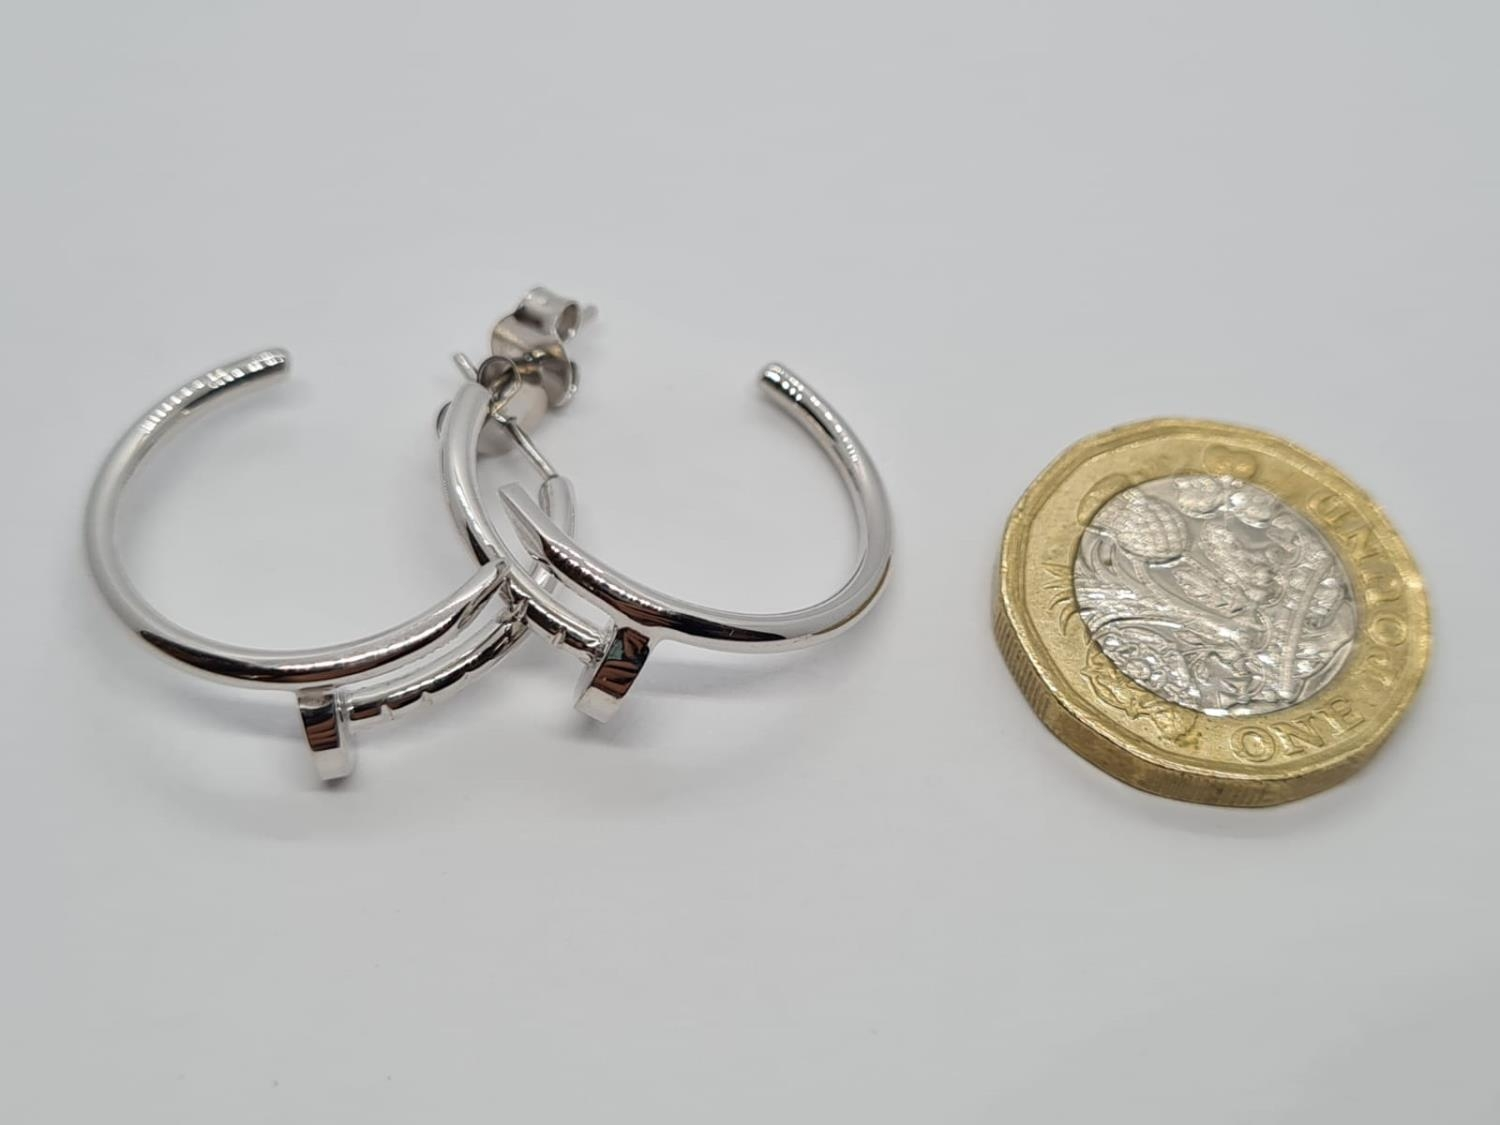 PAIR OF 9CT WHITE GOLD CARTIER STYLE EARRINGS, WEIGHT 5.5G - Image 4 of 4